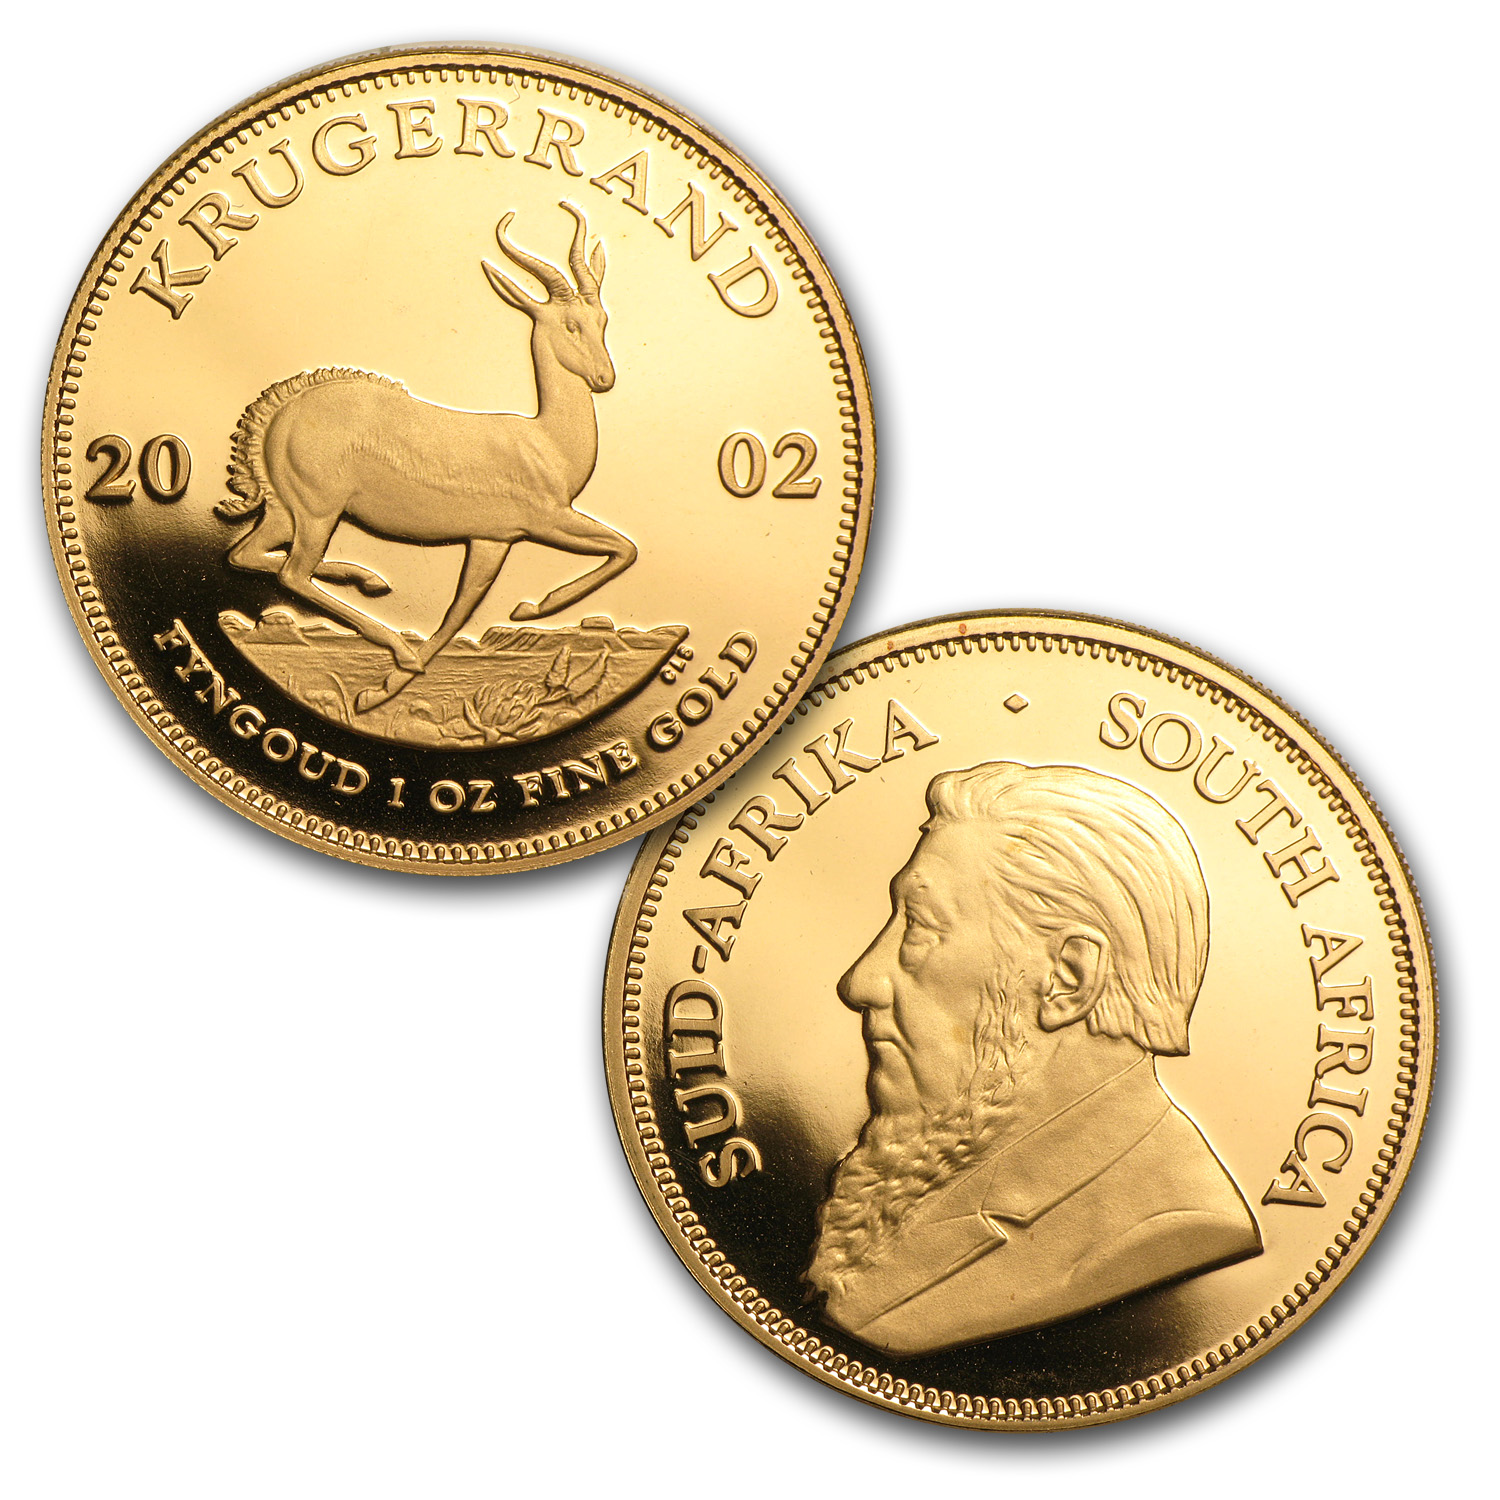 2002 South Africa 4-Coin Gold Krugerrand Proof Set